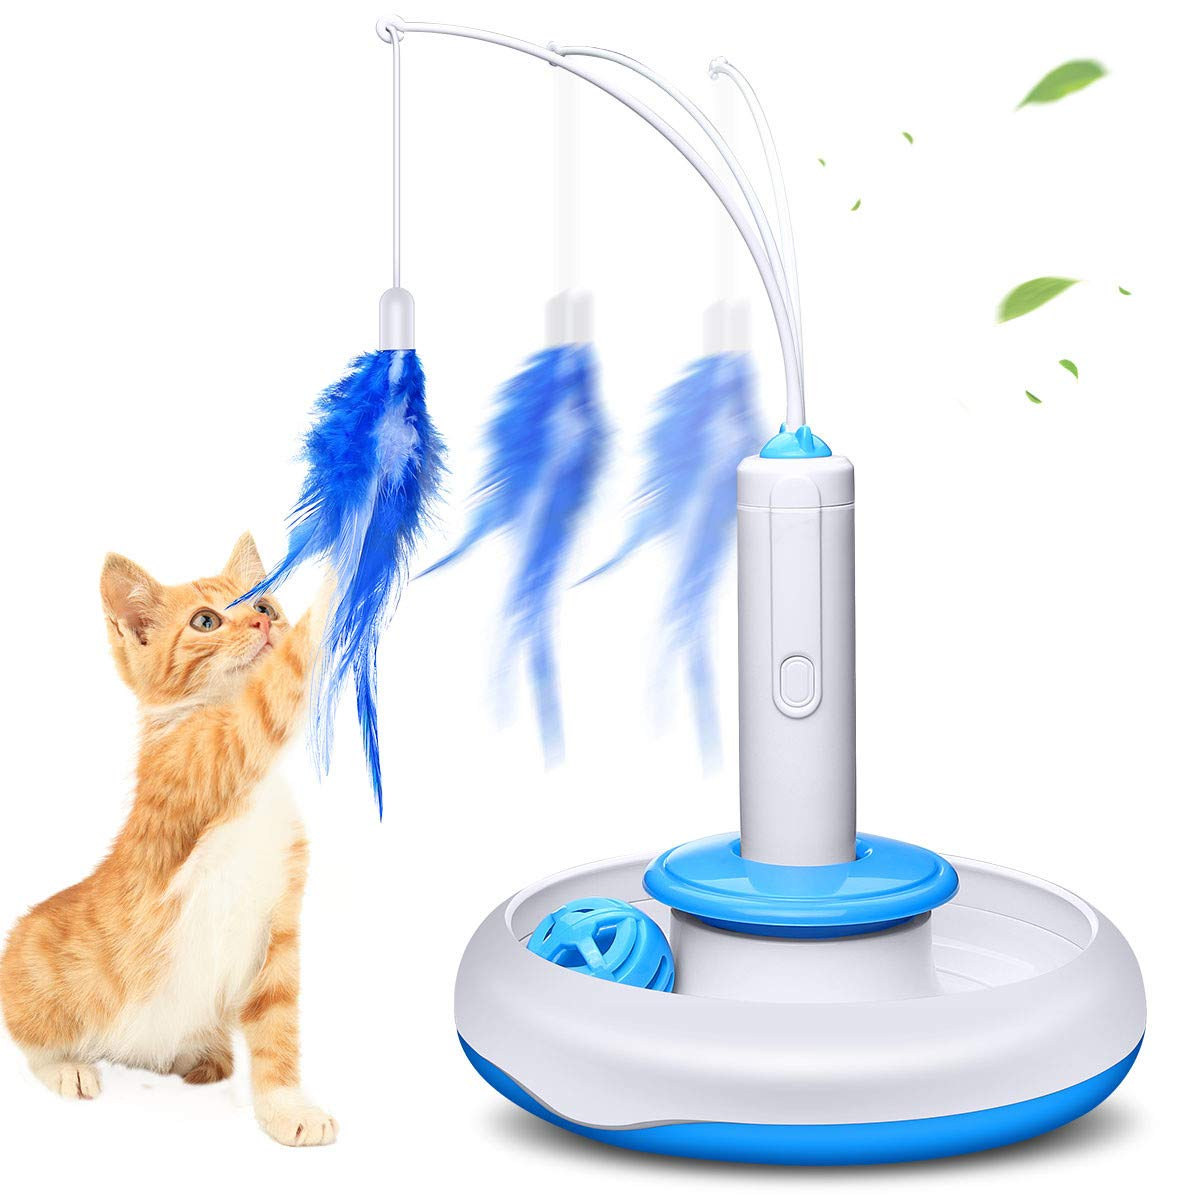 isYoung Cat Teasing Toy, Electric Mute Training Cat Toy Kitten Rotating Teaser Feather, Fun Playing Interactive Smart Game Pet Toy